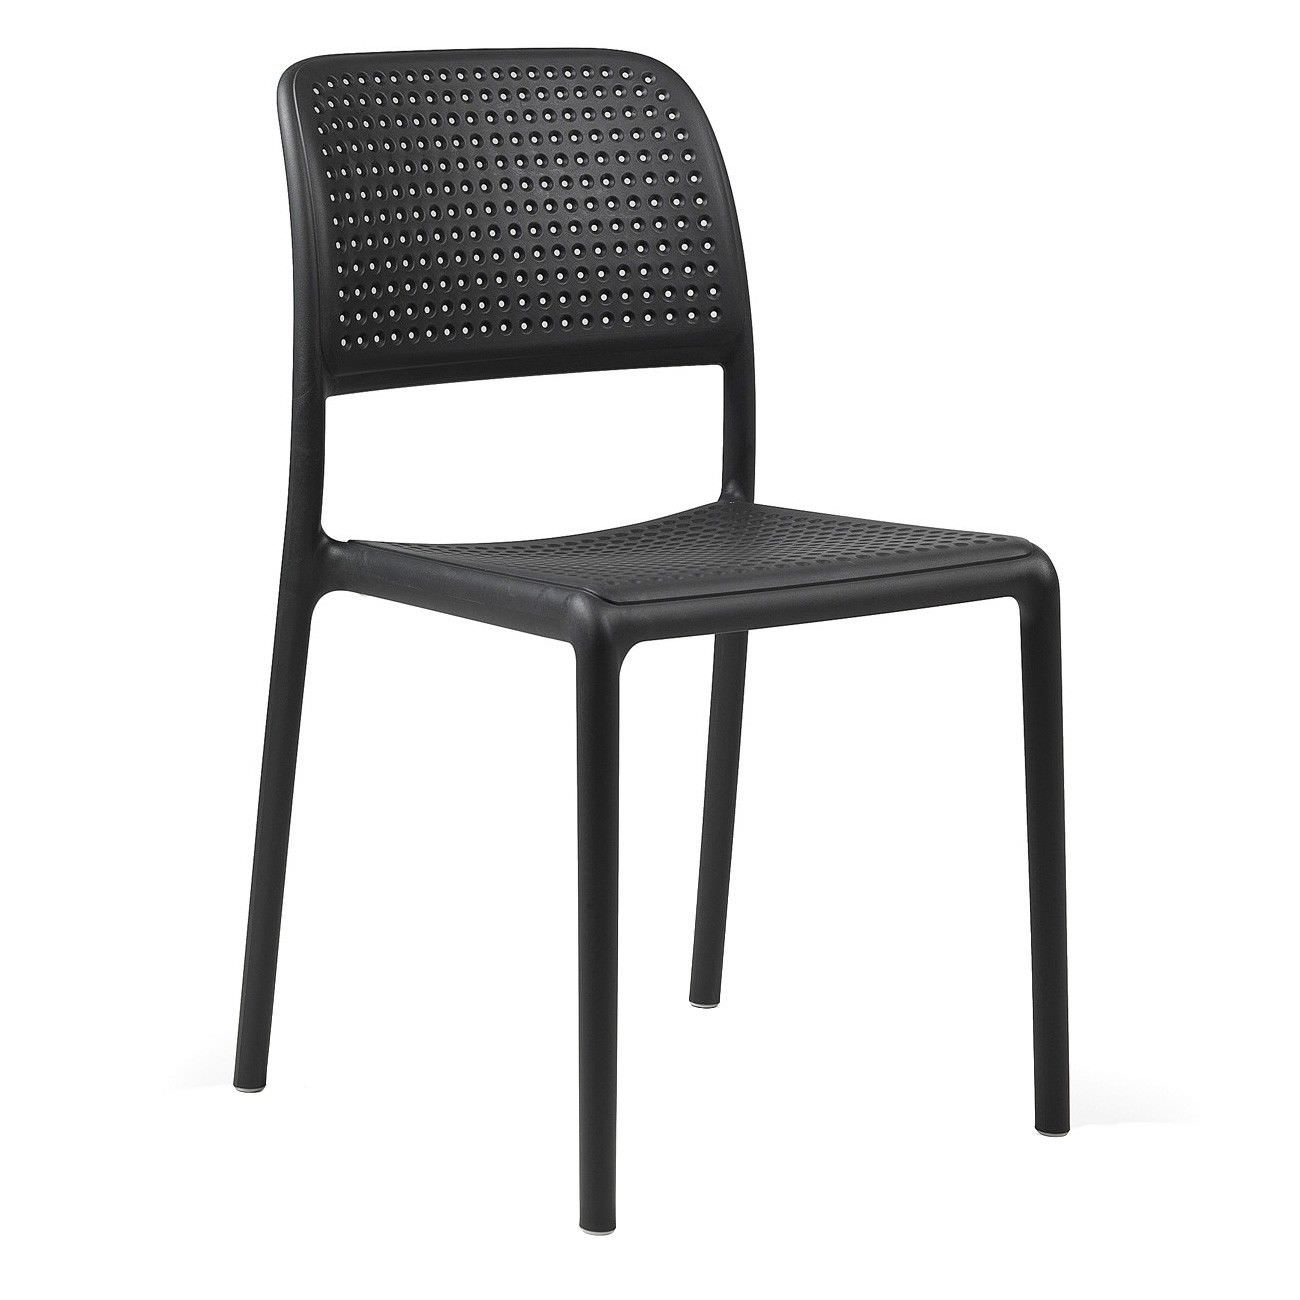 Bora Italian Made Commercial Grade Stackable Indoor/Outdoor Side Chair - Anthracite